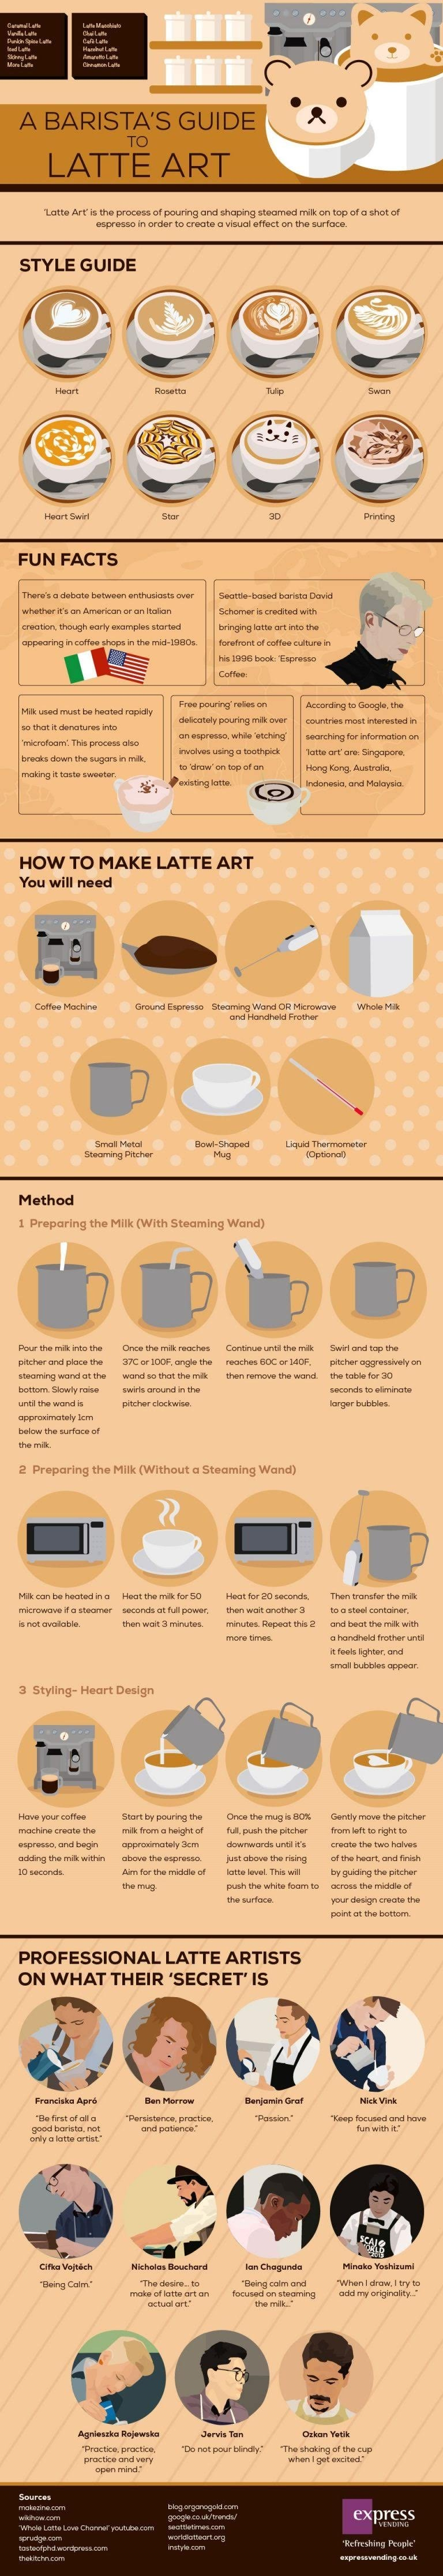 A Latte Art Guide From Barista #infographic